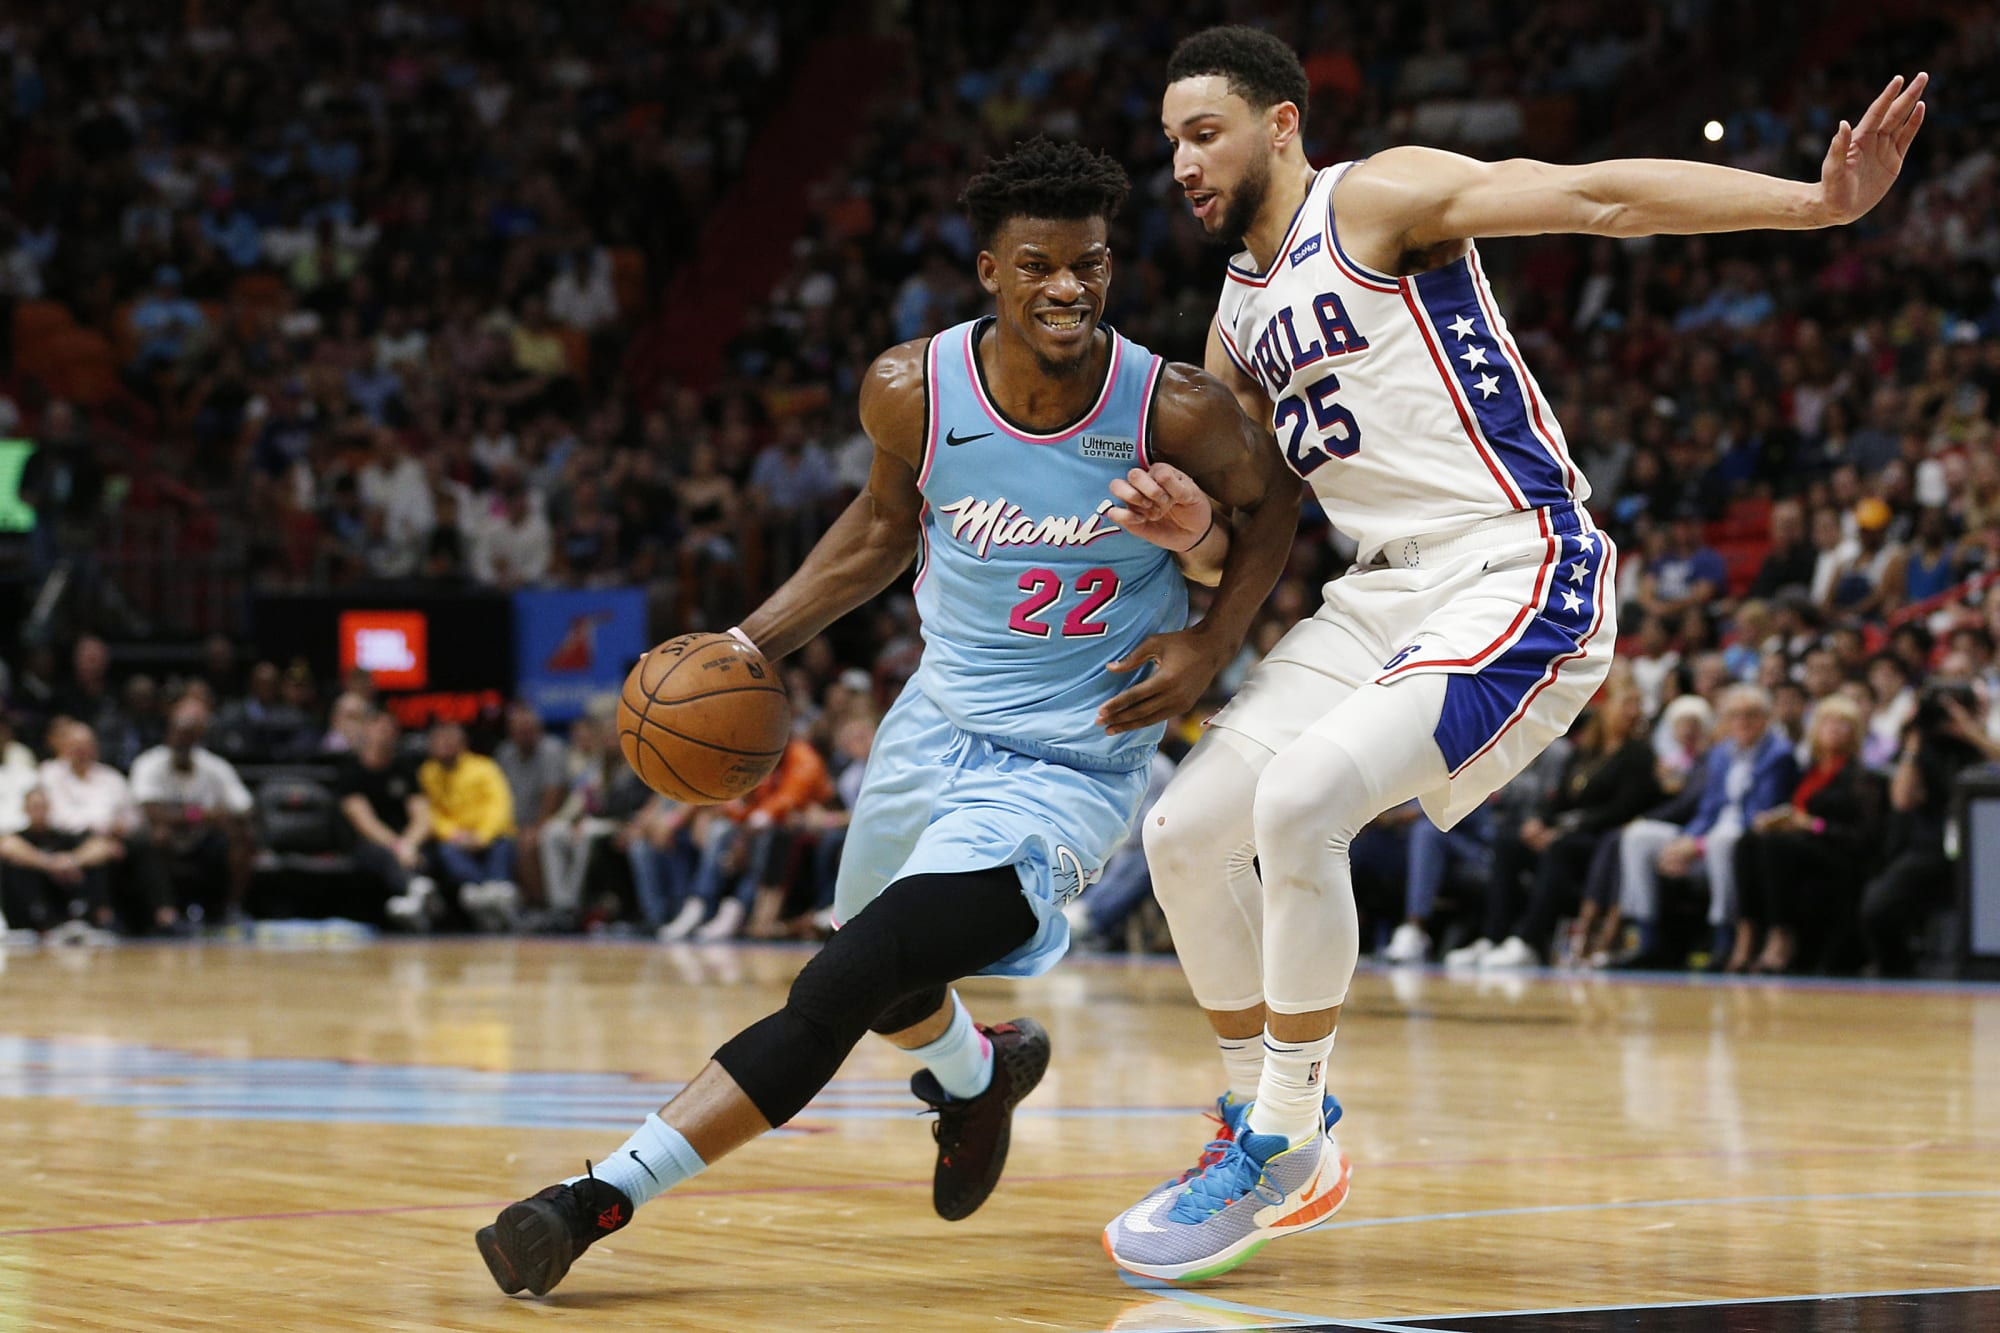 Miami Heat: Ben Simmons drama proves Jimmy Butler was right